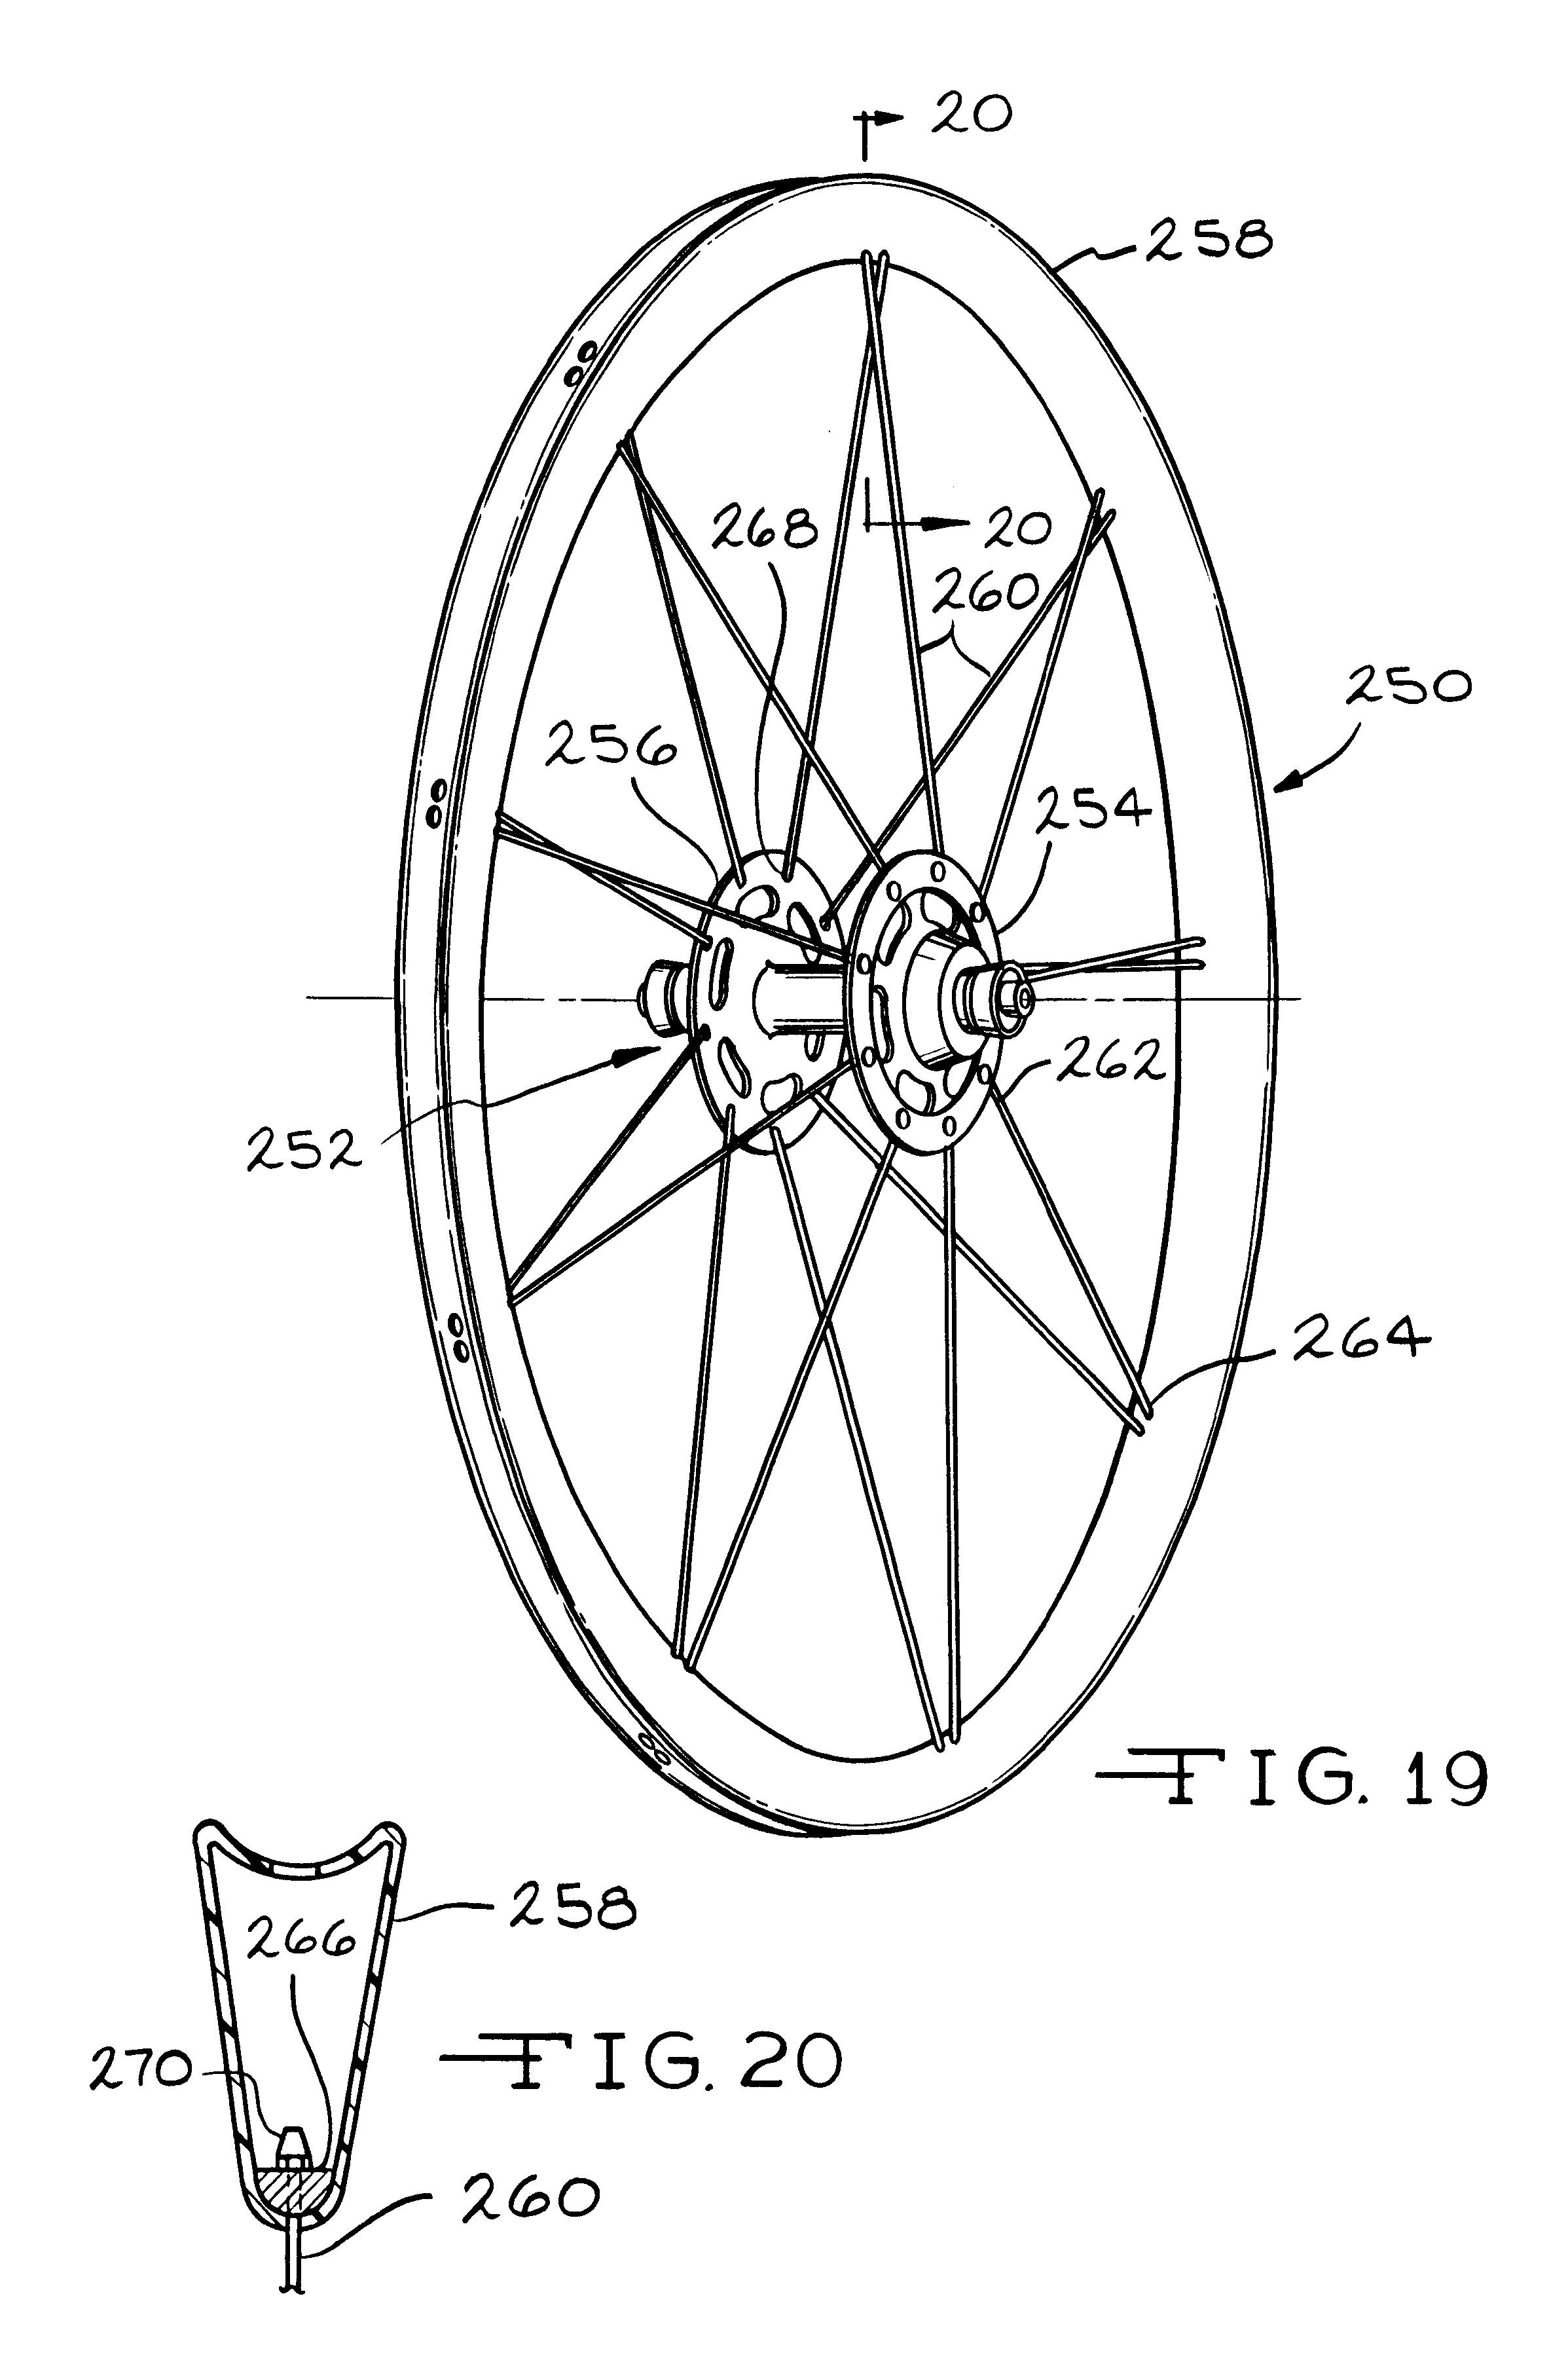 This is an image of Légend Bike Wheel Drawing